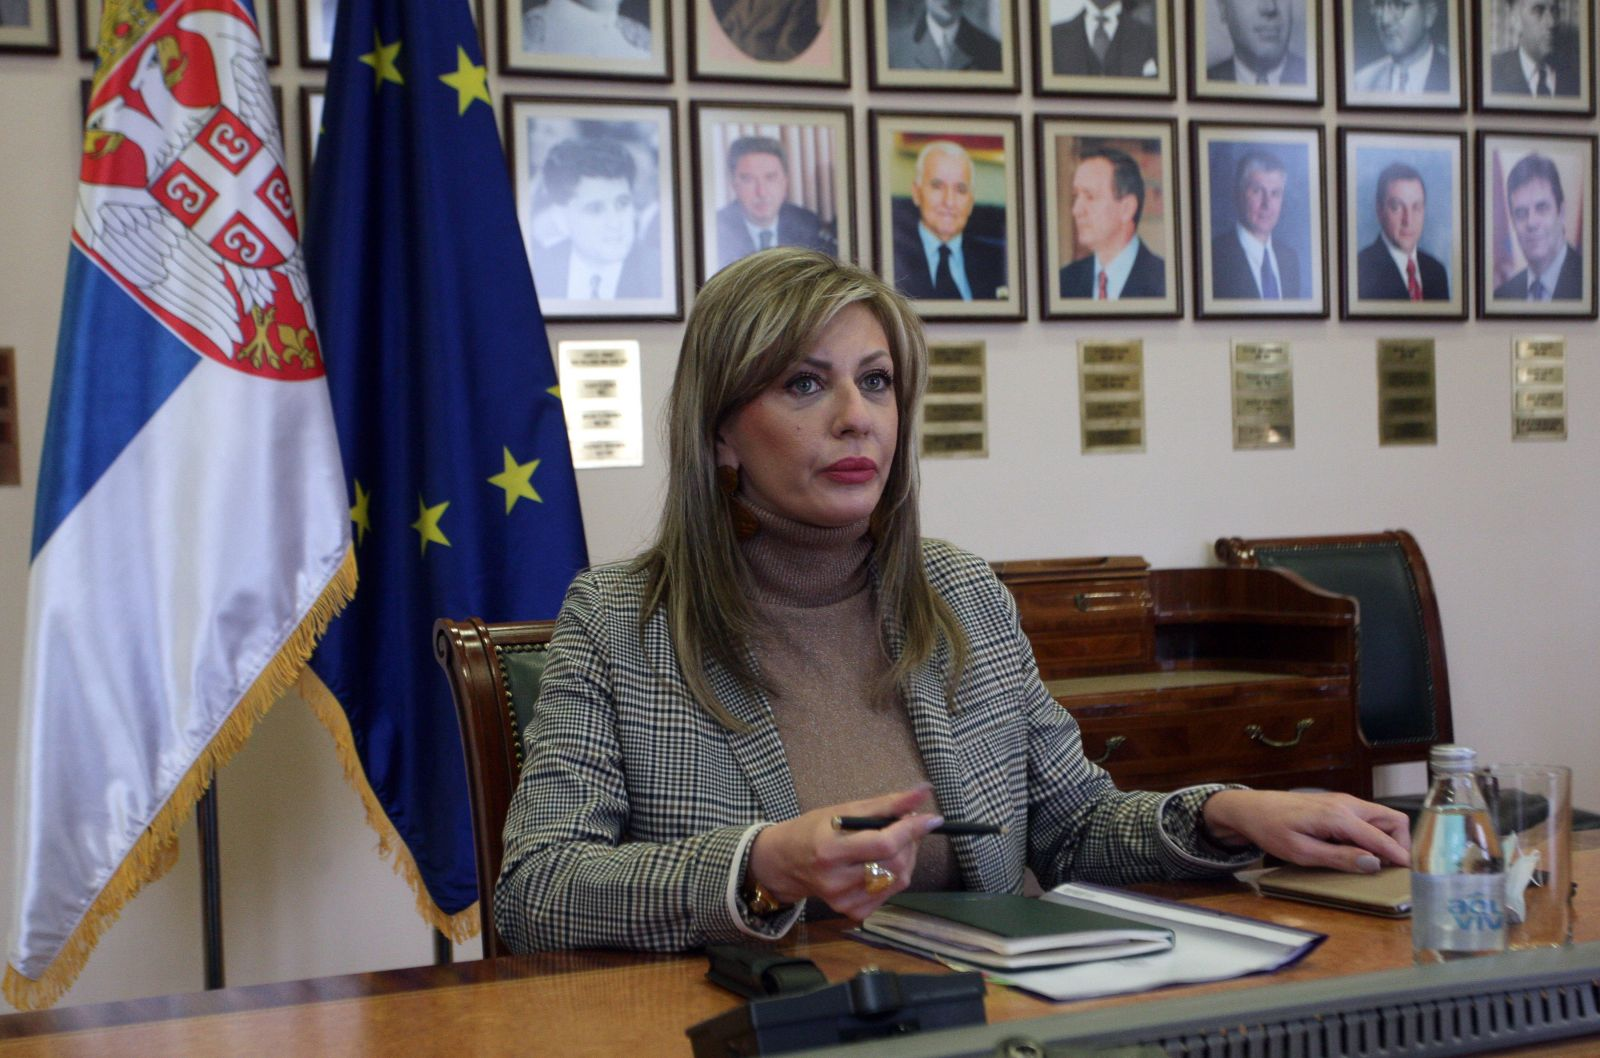 J. Joksimović: Serbia has not been a burden to the EU during the pandemic